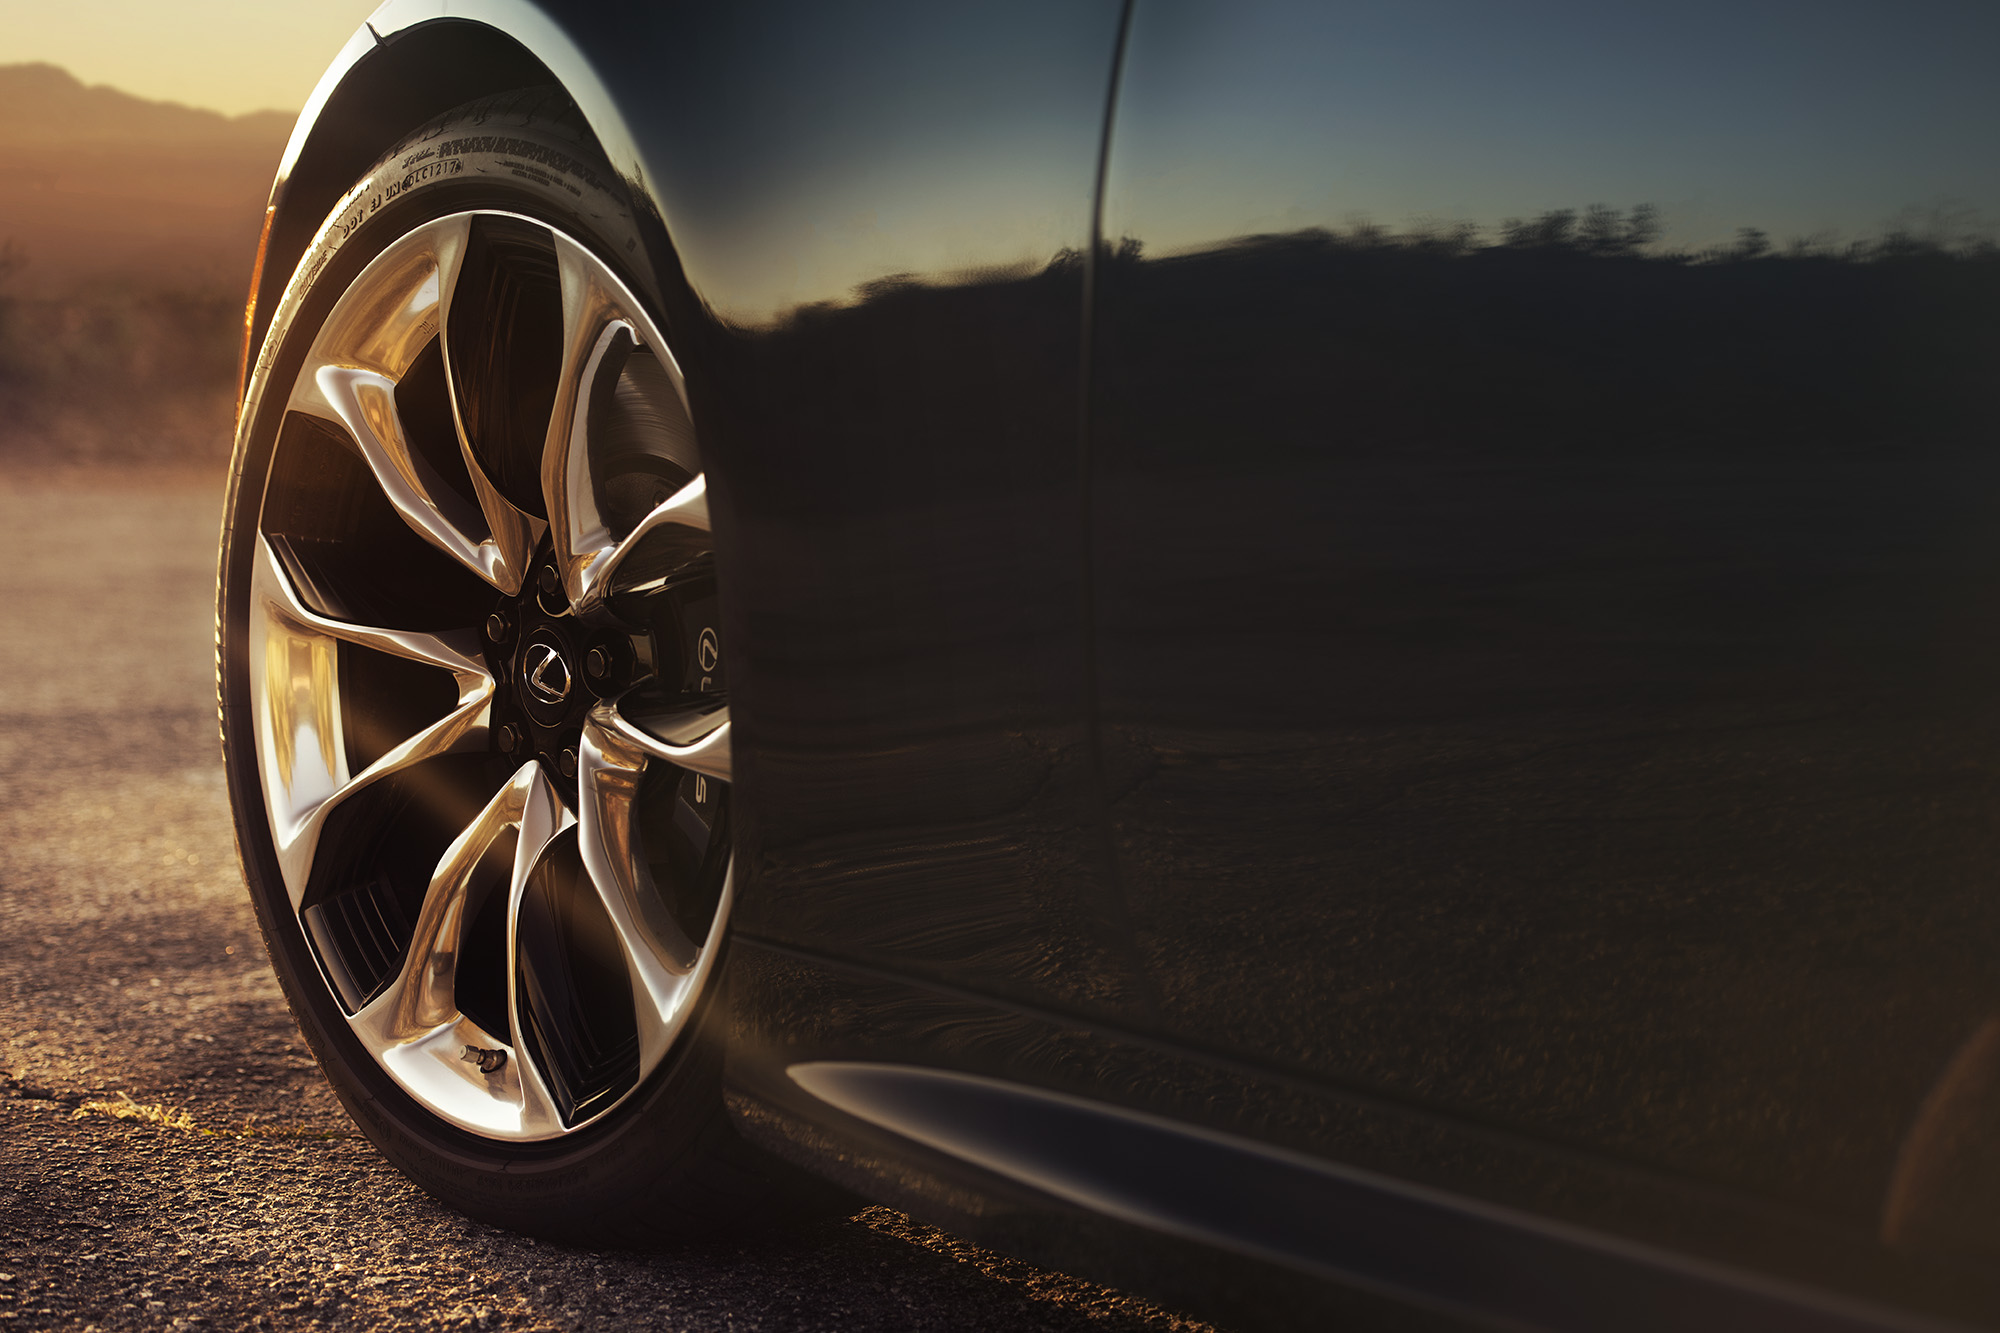 lexus Wheel detail.jpg